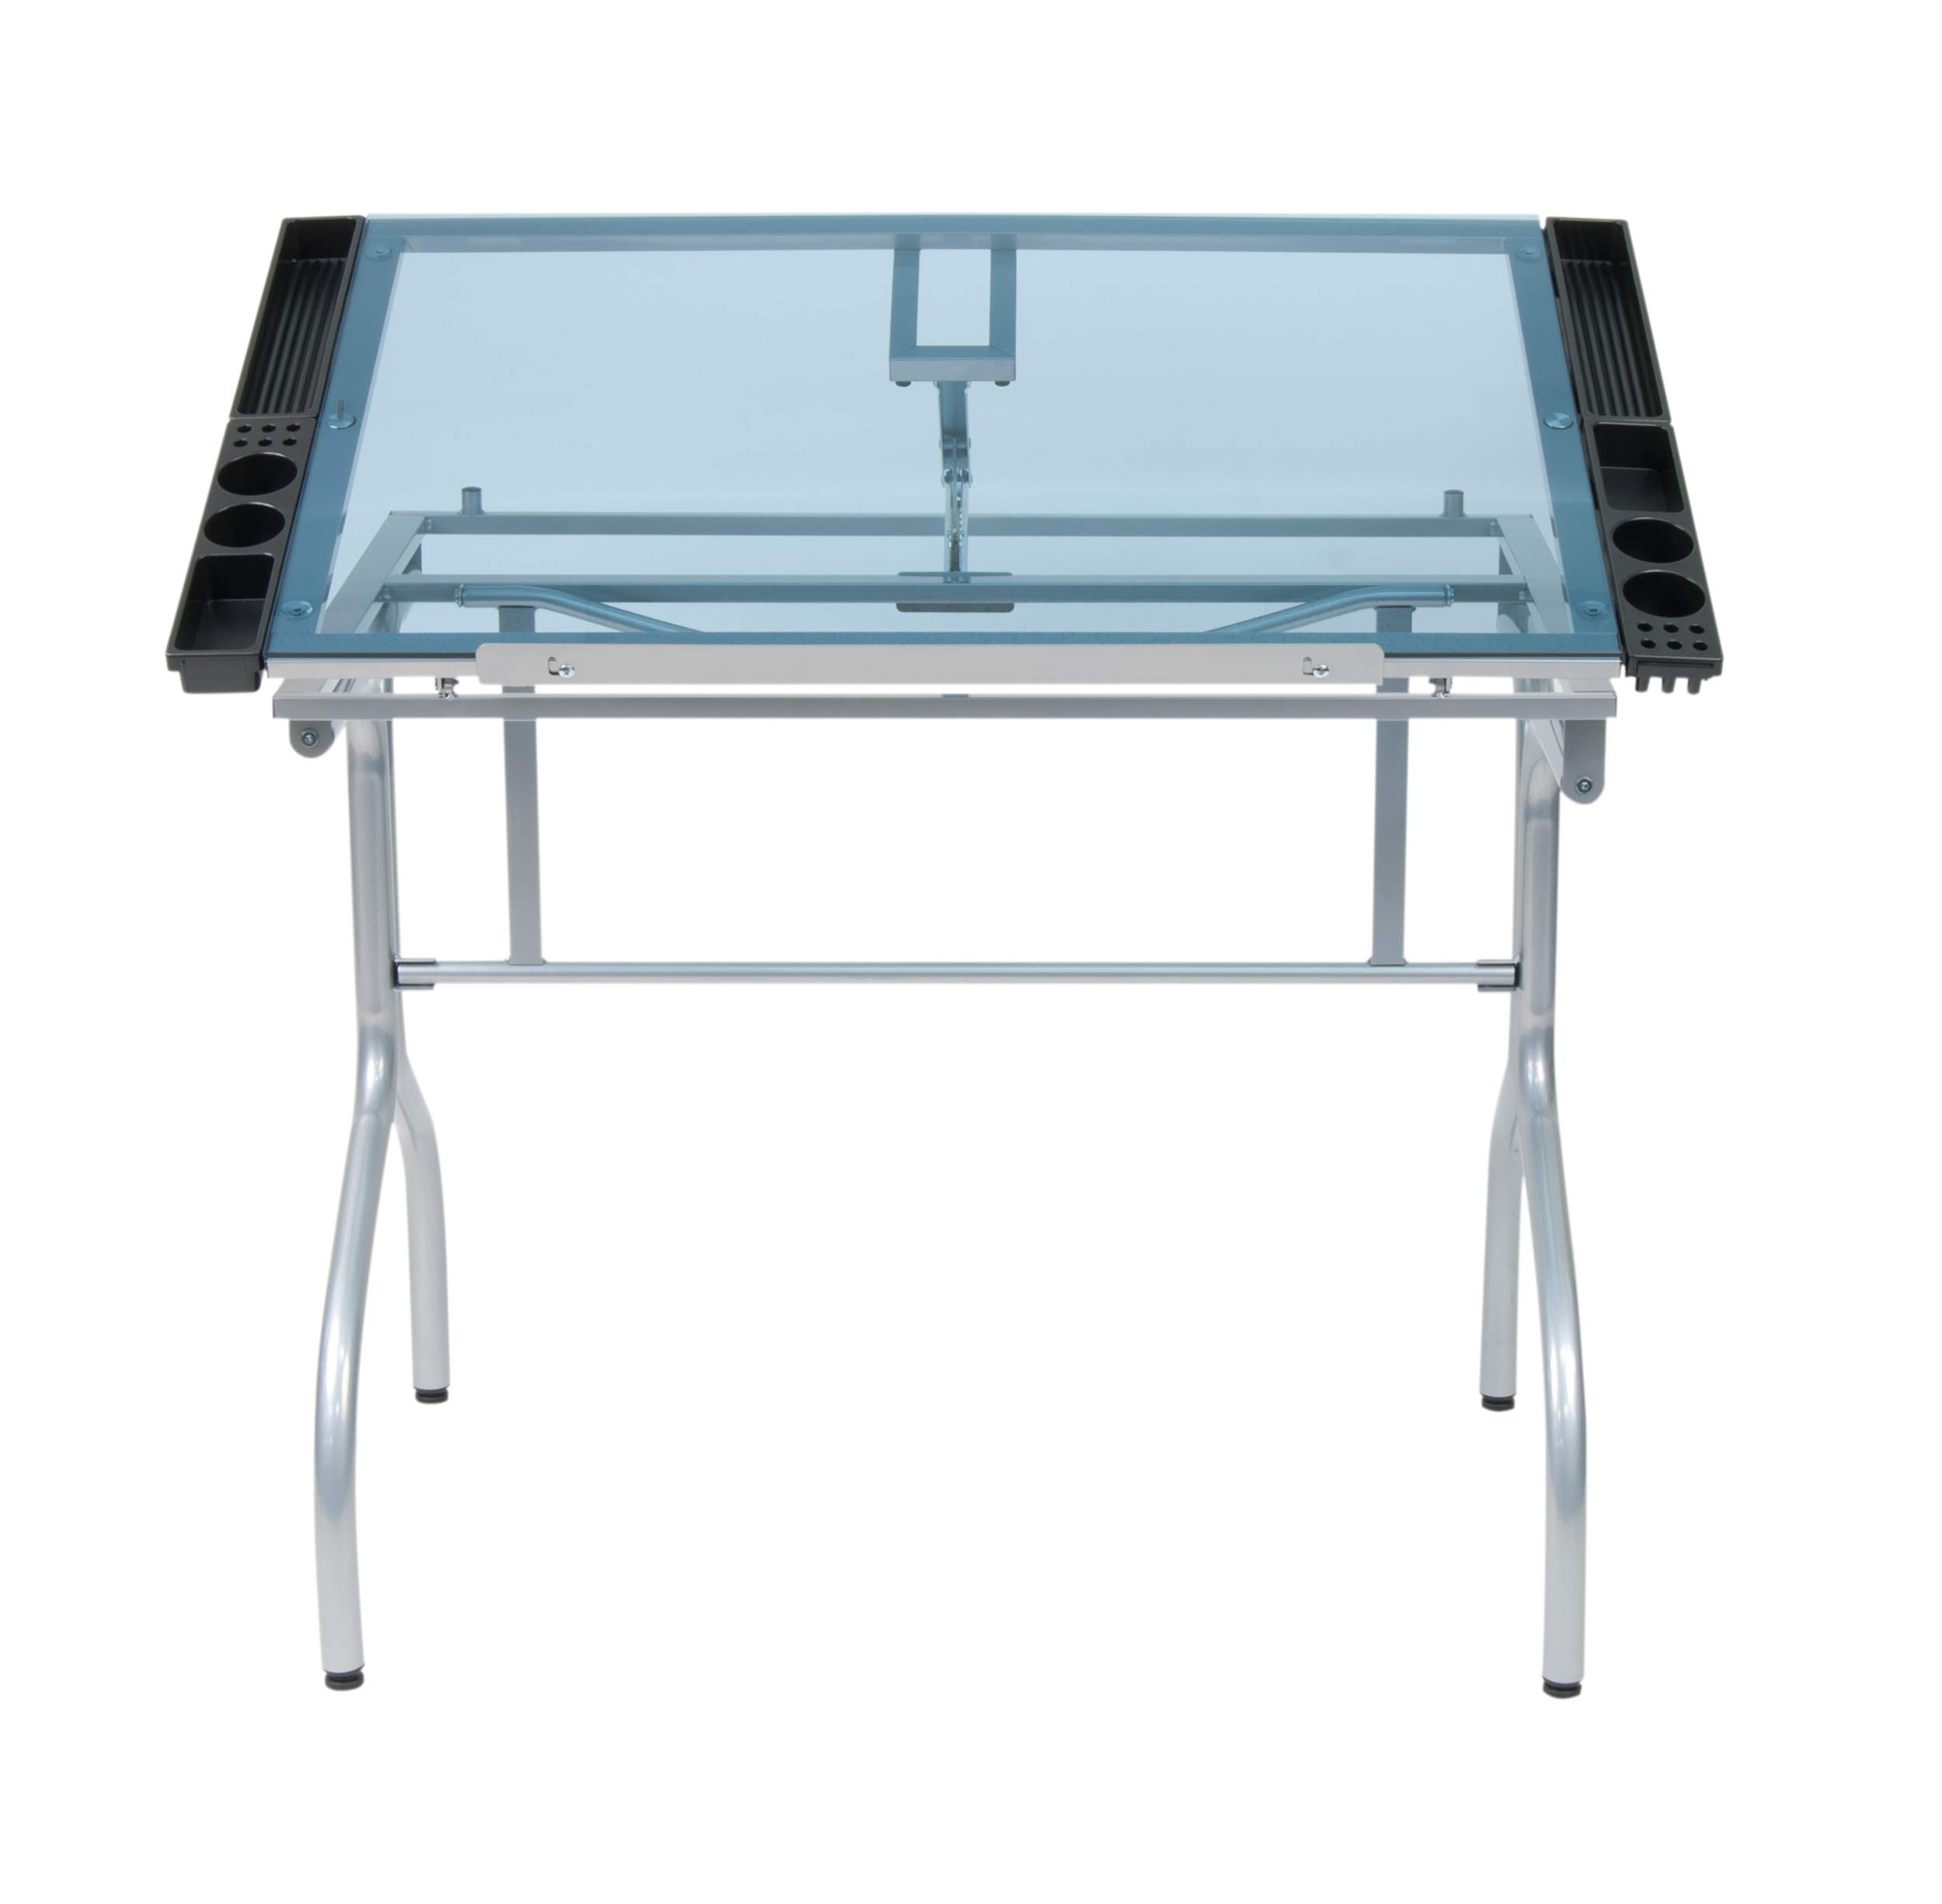 Studio Designs Folding Modern Glass Top Adjustable Drafting Table Craft Table Drawing Desk Hobby Table Writing Desk Studio Desk, 35.25'' W x 23.75'' D, Silver / Blue Glass by SD STUDIO DESIGNS